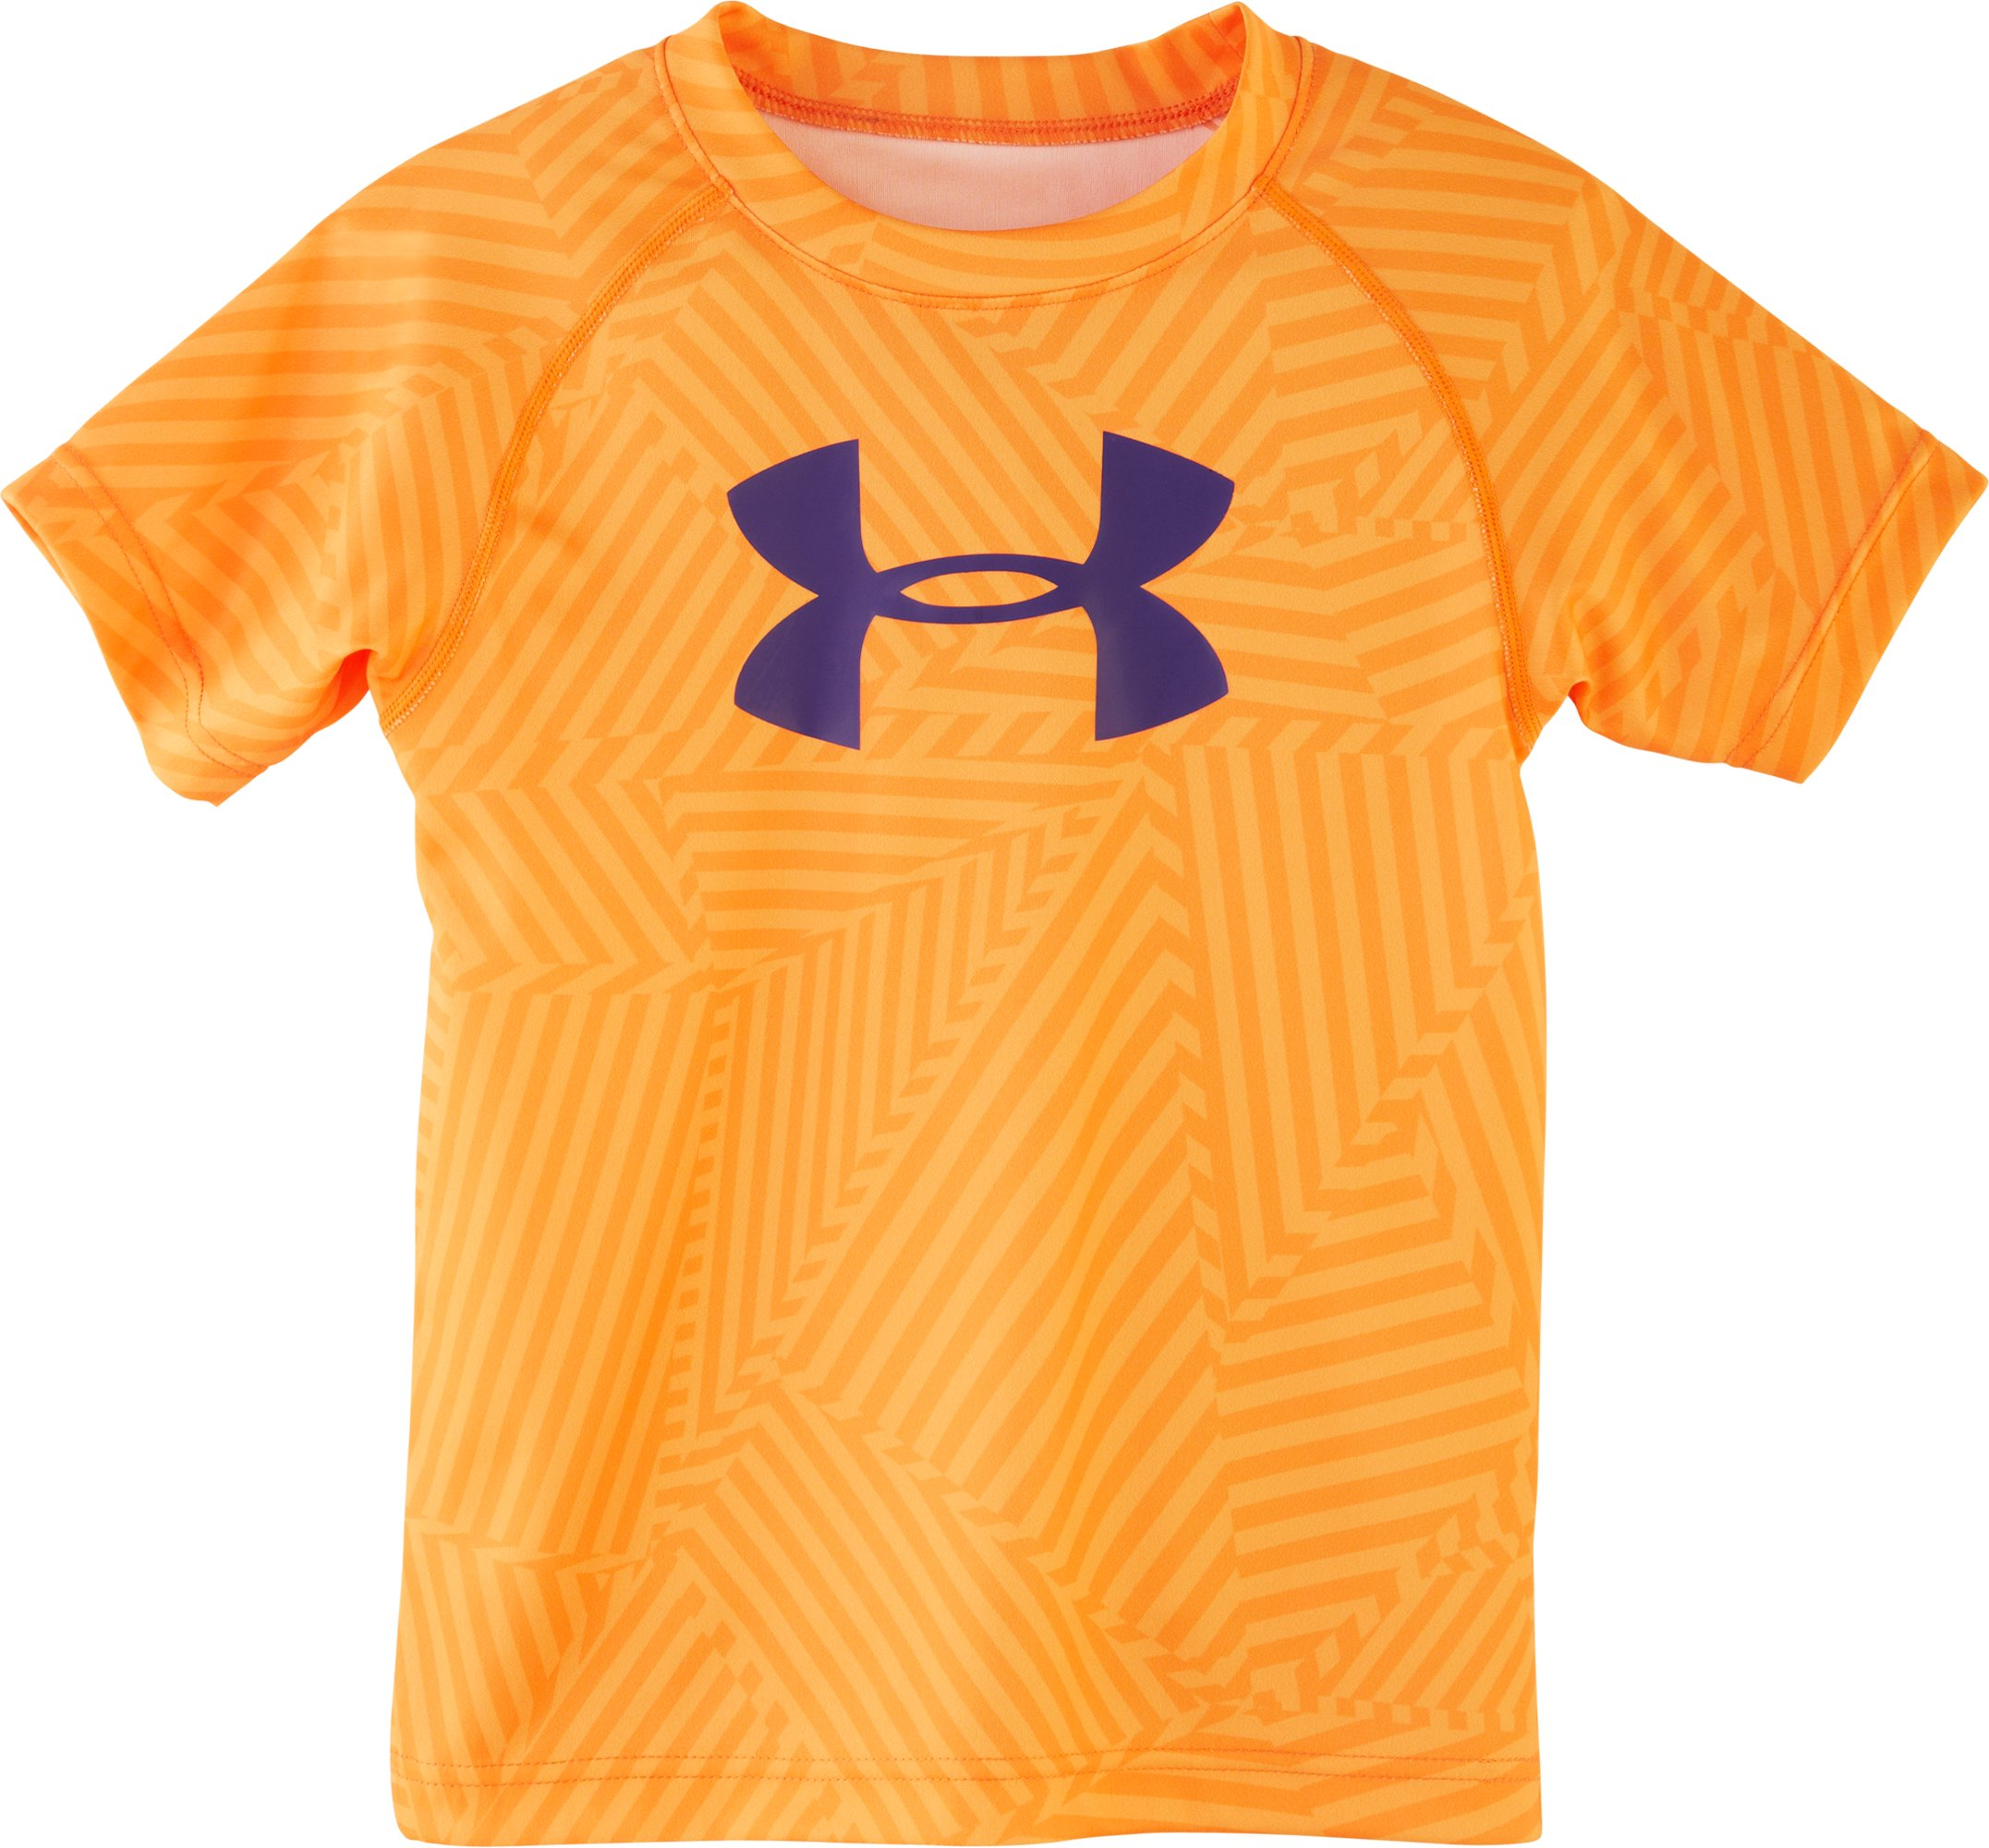 Boys' Toddler UA Big Logo Favella Print T-Shirt, Blaze Orange, Laydown